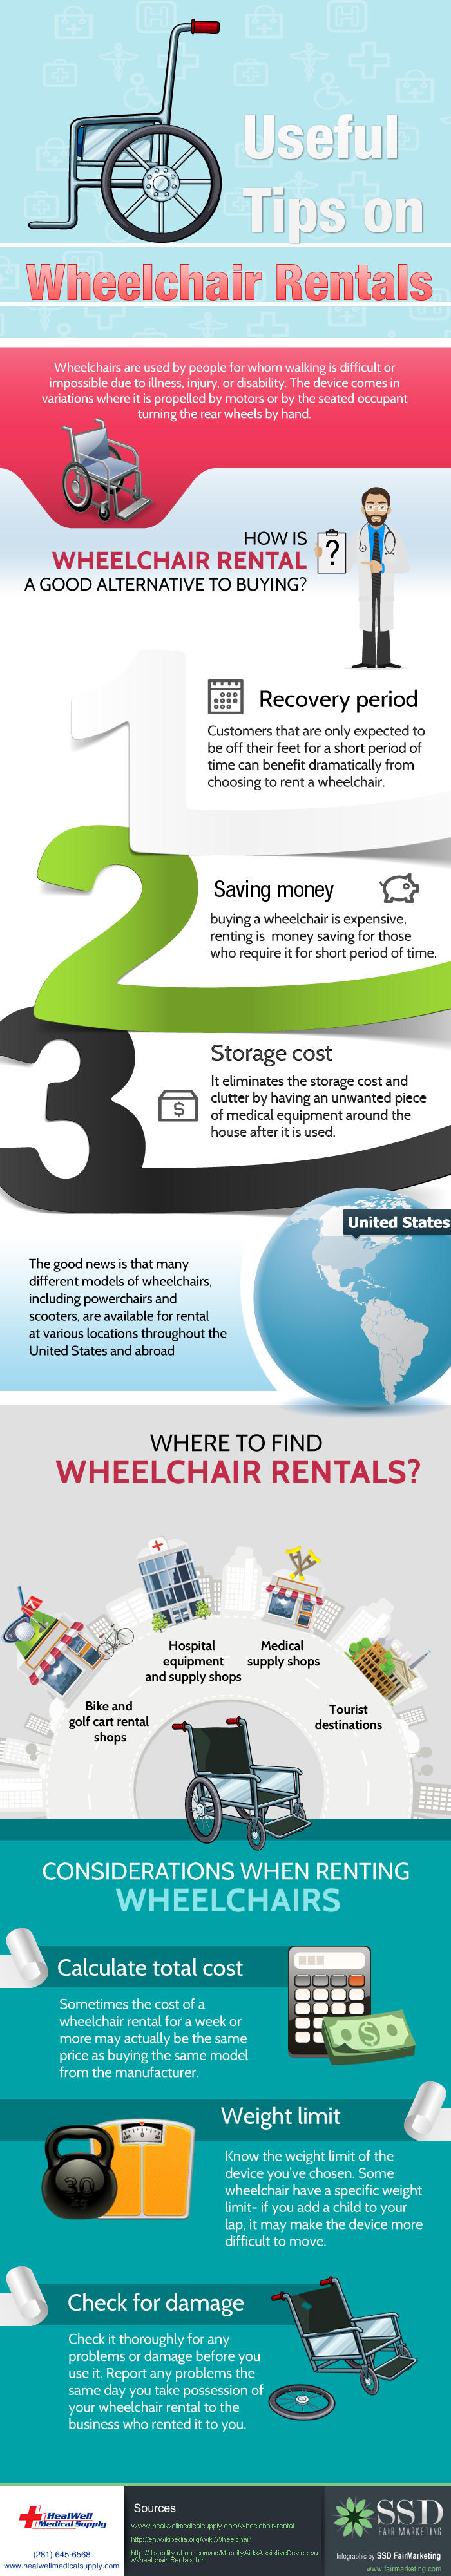 This image is an infographic that discusses wheelchair rental